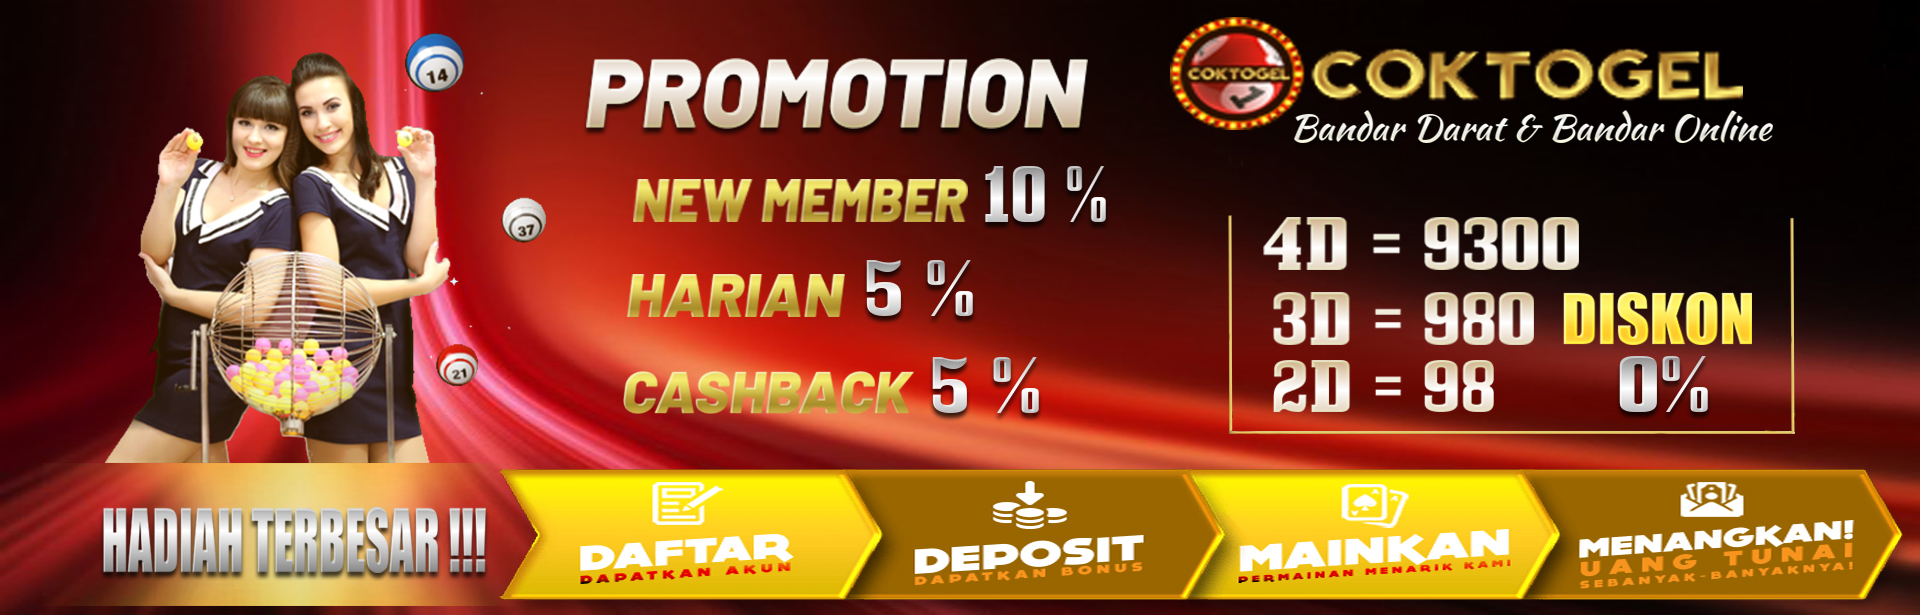 banner-promotions